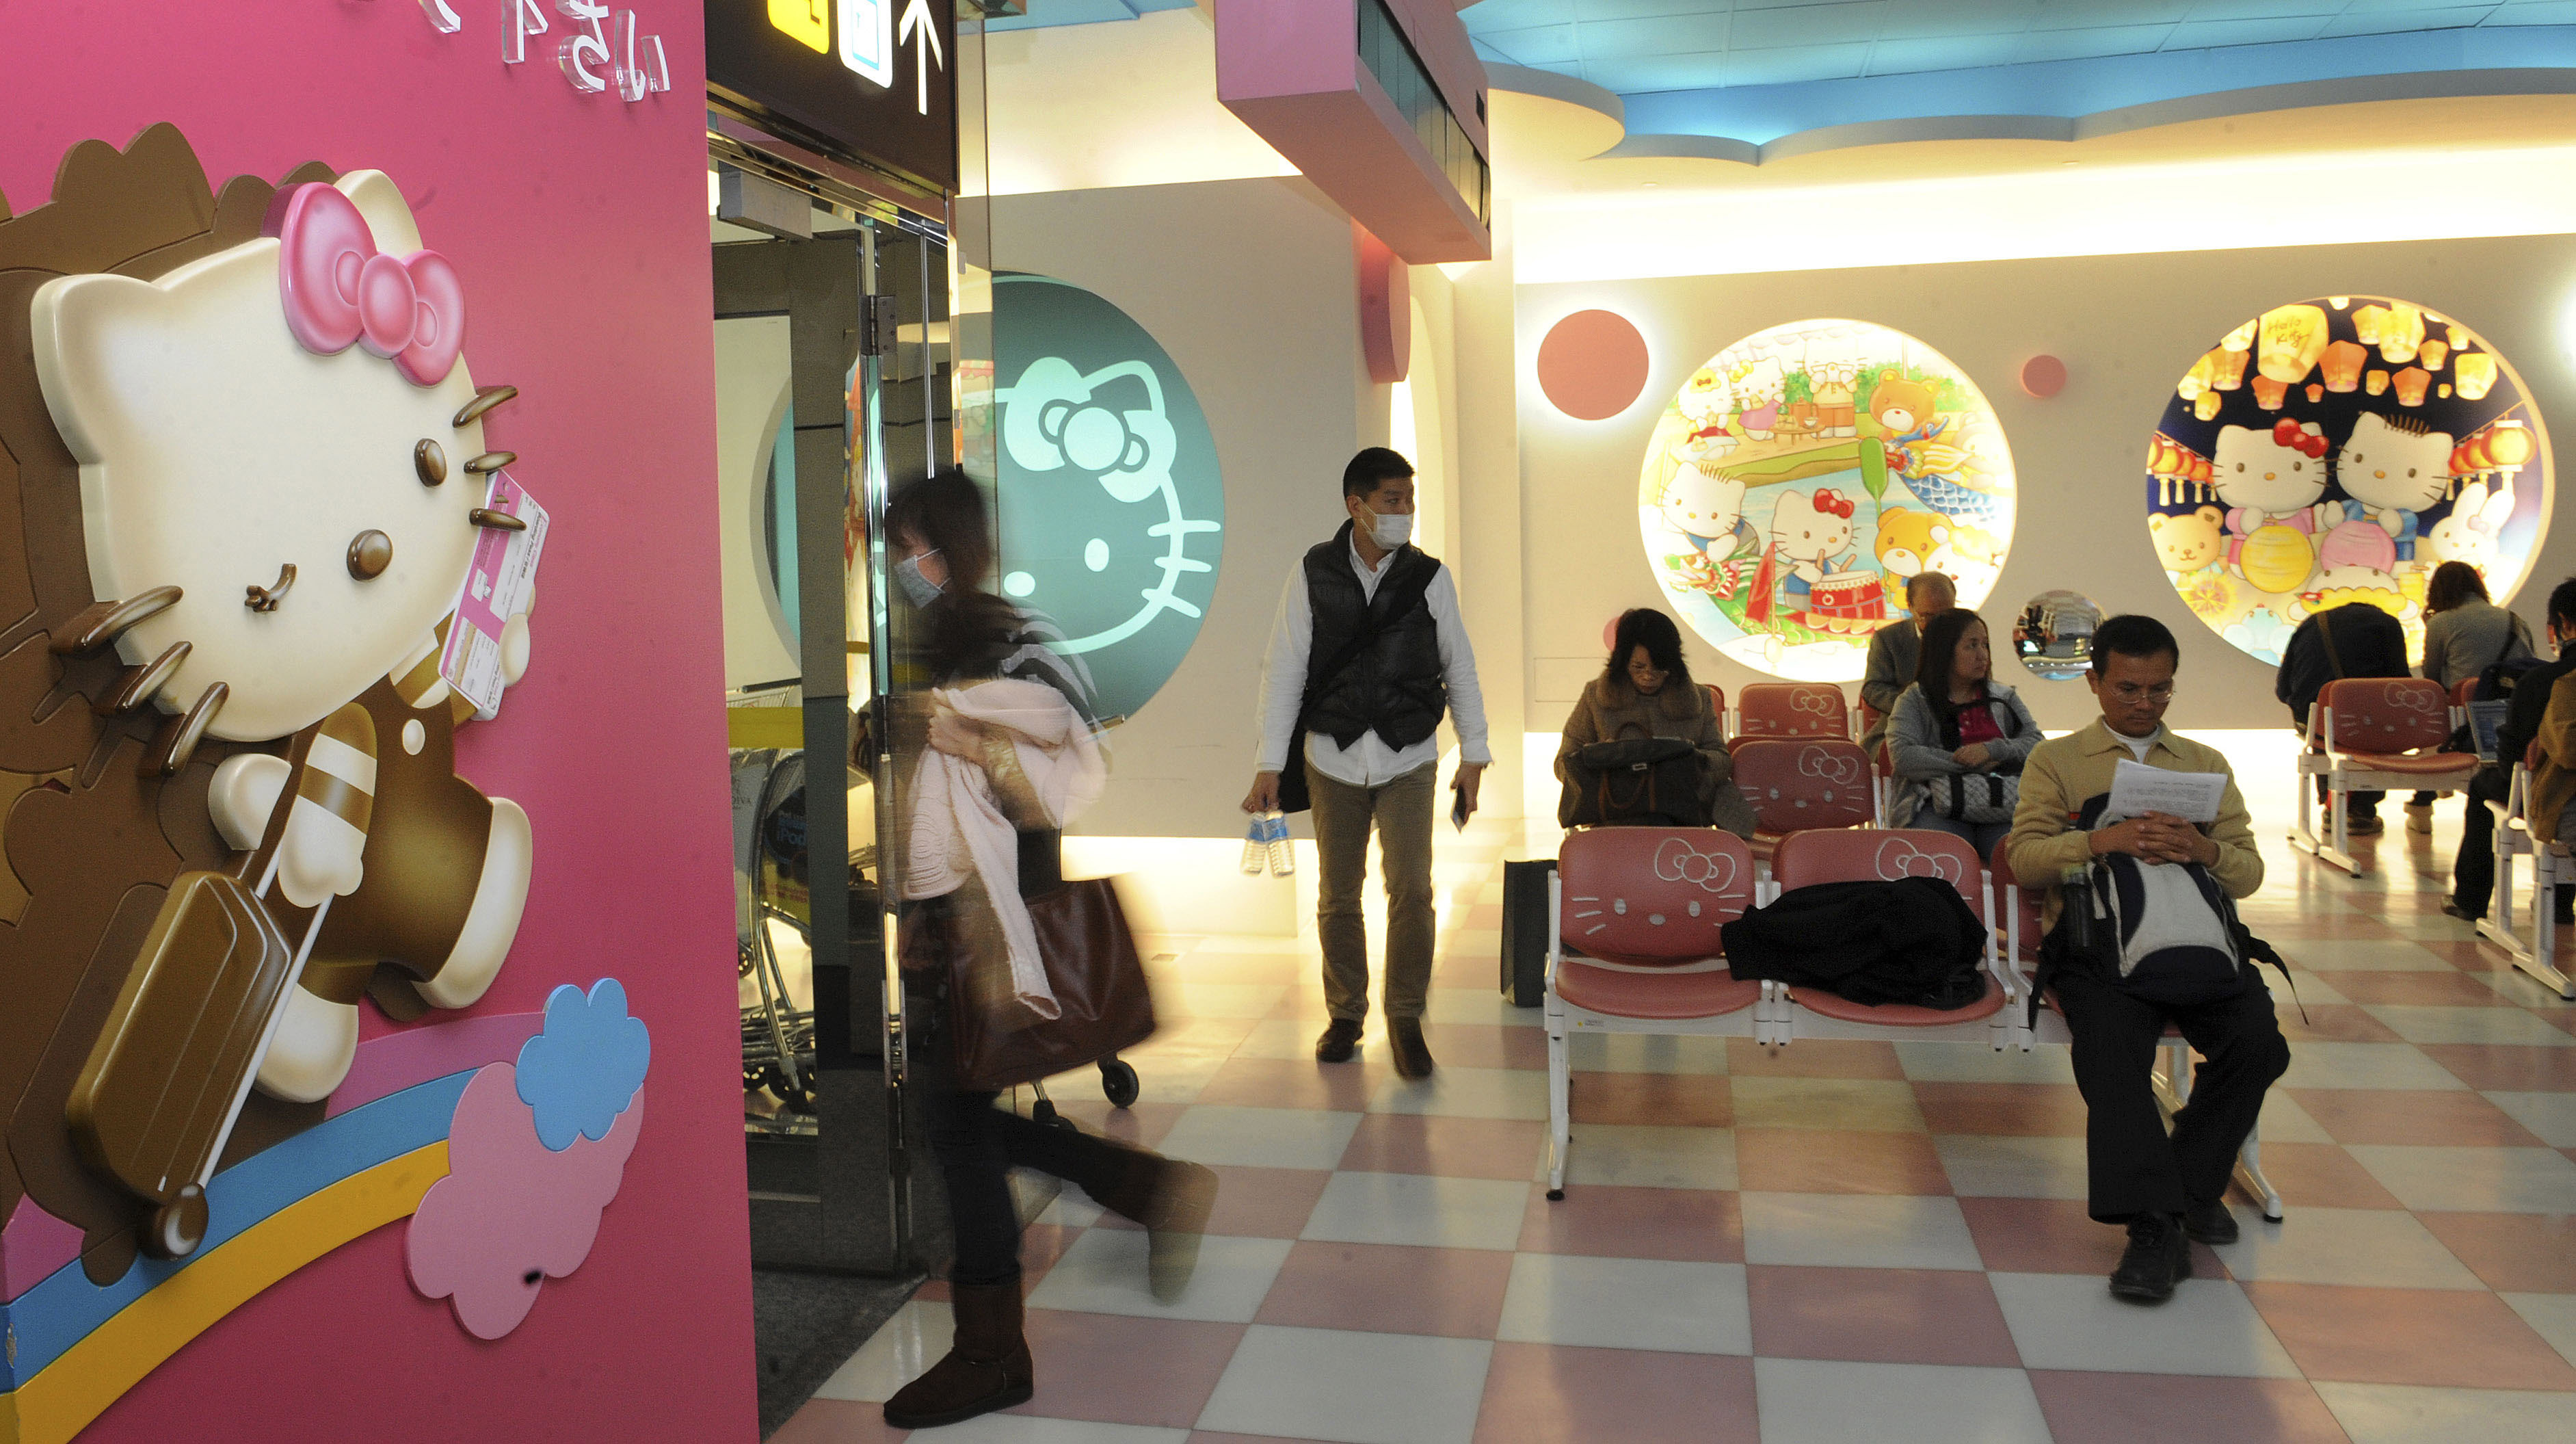 "In this photo taken Friday, Dec. 25, 2009, air passengers wait in the Japanese feline character ""Hello Kitty"" designed terminal gate at the Taipei International Airport, in Taoyuan, Taiwan. Taiwanese airline EVA Air his hosting a special Father's Day flight on its Hello Kitty-themed airplane."